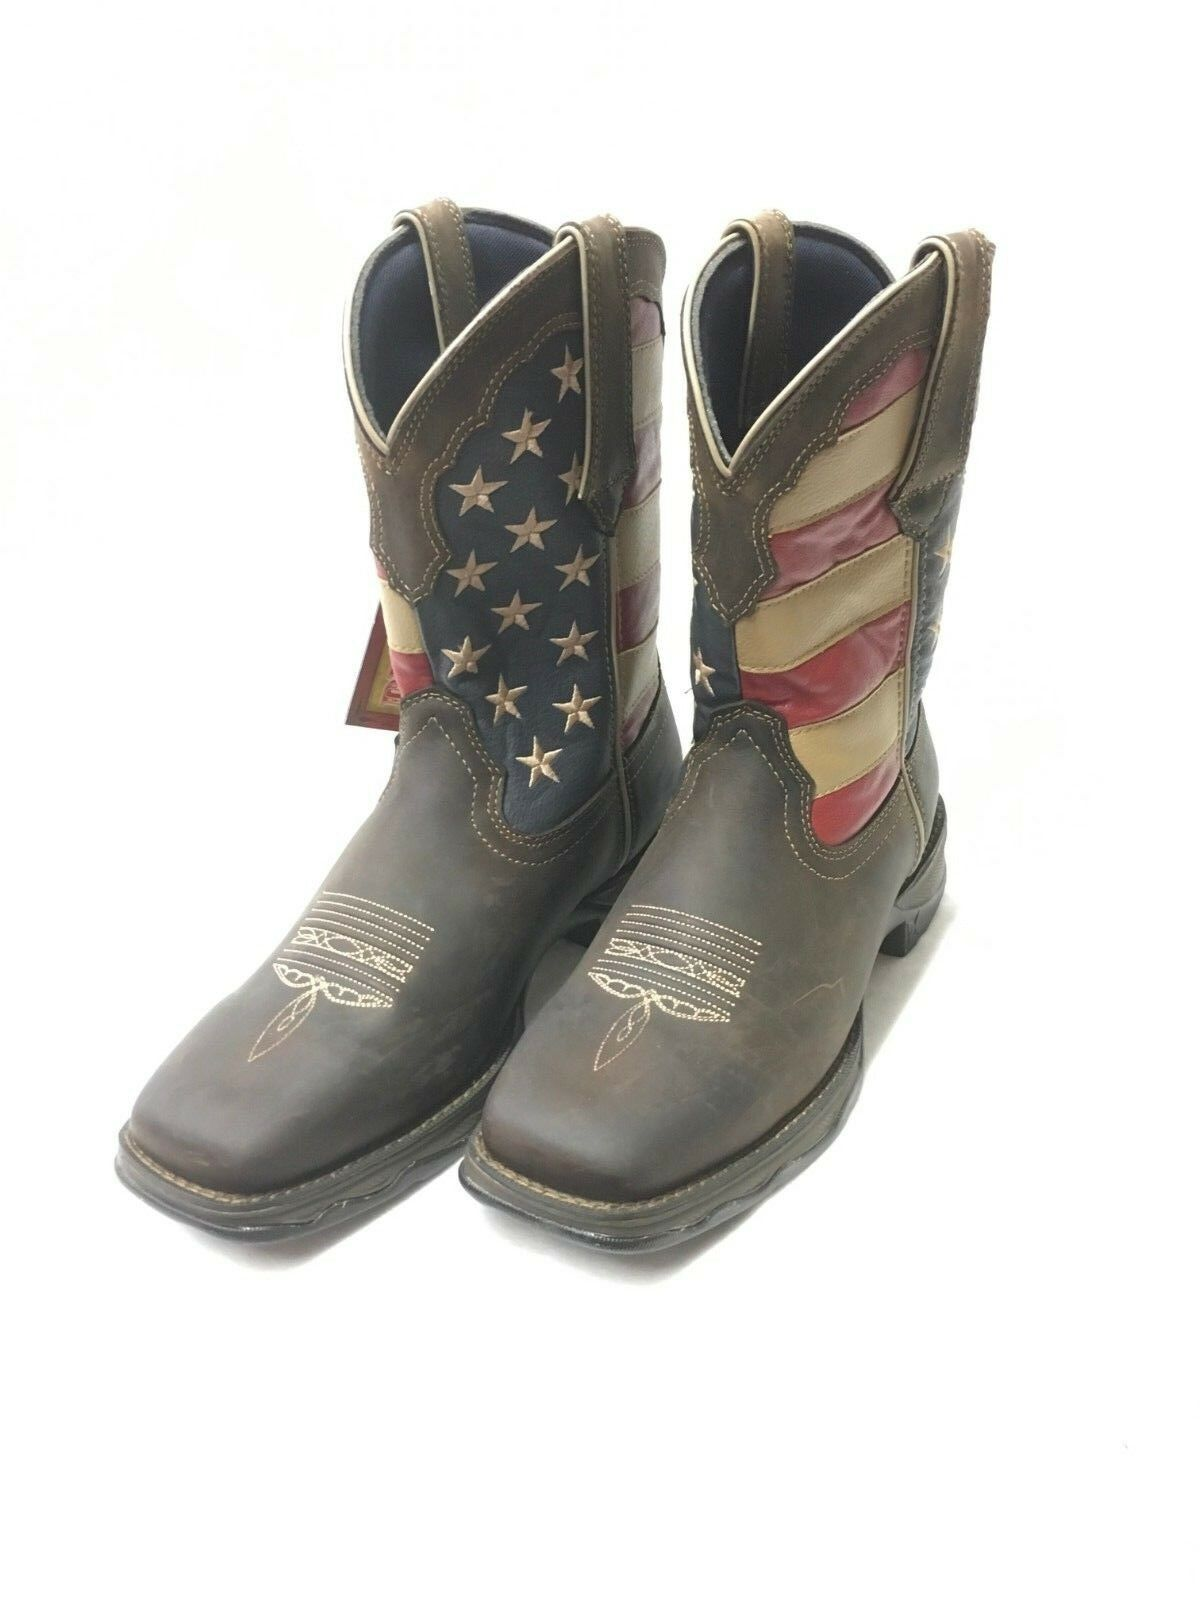 acquista marca Lady Rebel Rebel Rebel by Durango Western Flag stivali, Style RD4414  in linea